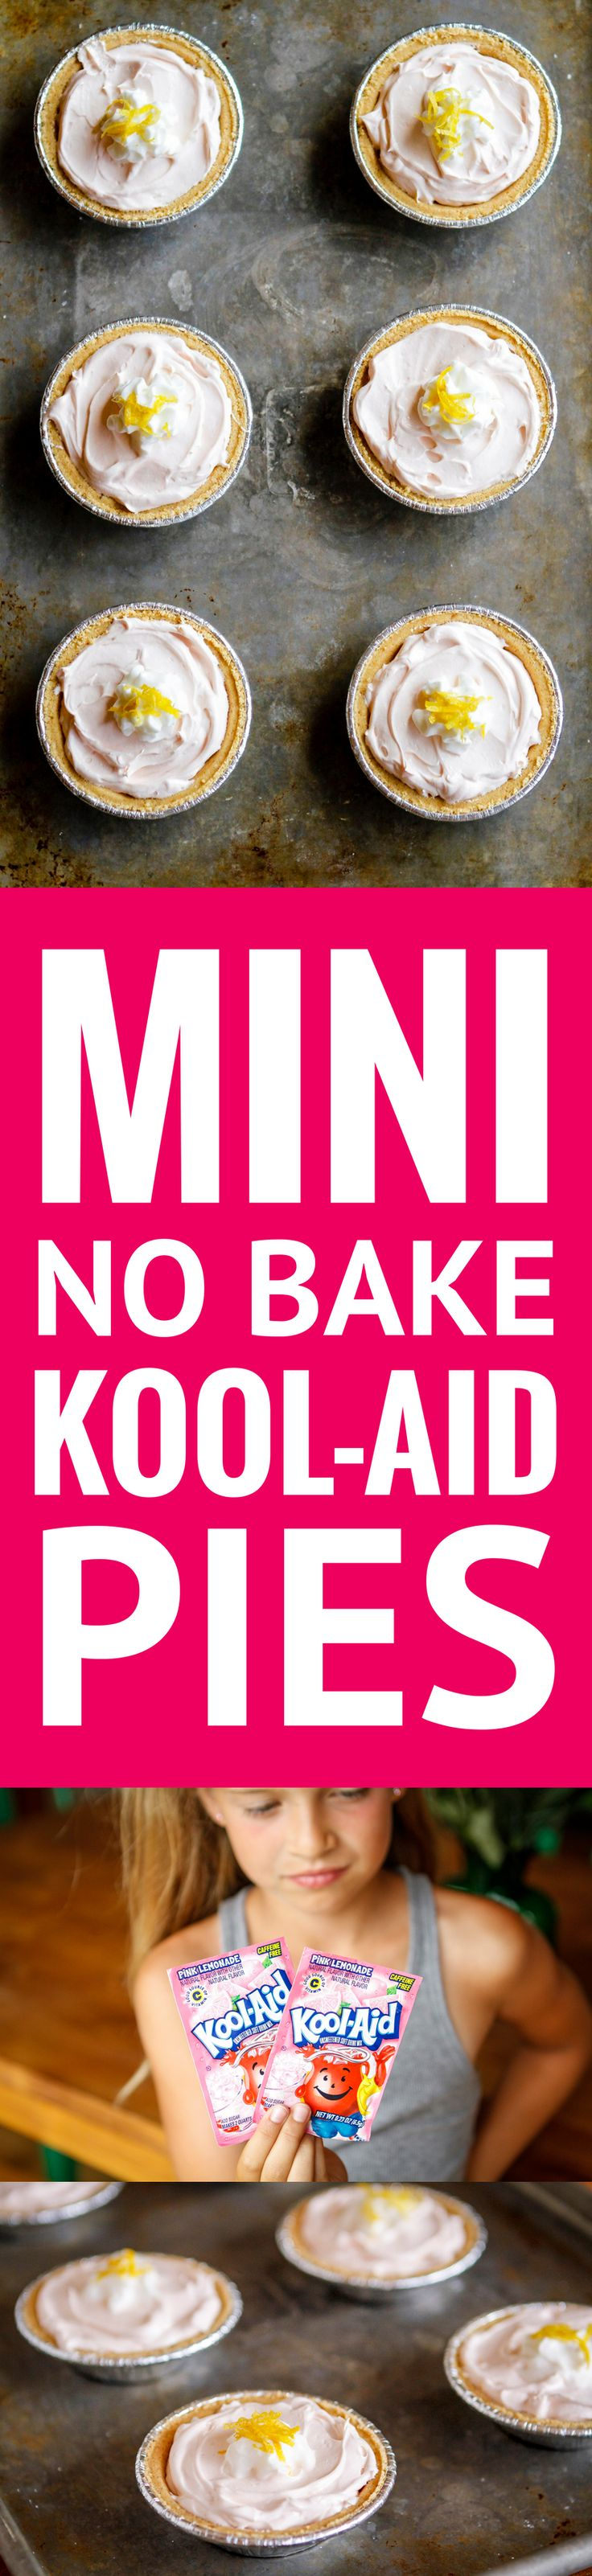 No Bake Kool-Aid Pie -- these mini Kool-Aid pies are so super easy to make that the kids can throw them together entirely by themselves... and they taste amazing! | kool aid pie recipe | kool aid pie recipe simple | kool aid pie recipe graham crackers | kool aid pie recipe summer | kool aid pie recipe cool whip | find the recipe on unsophisticook.com